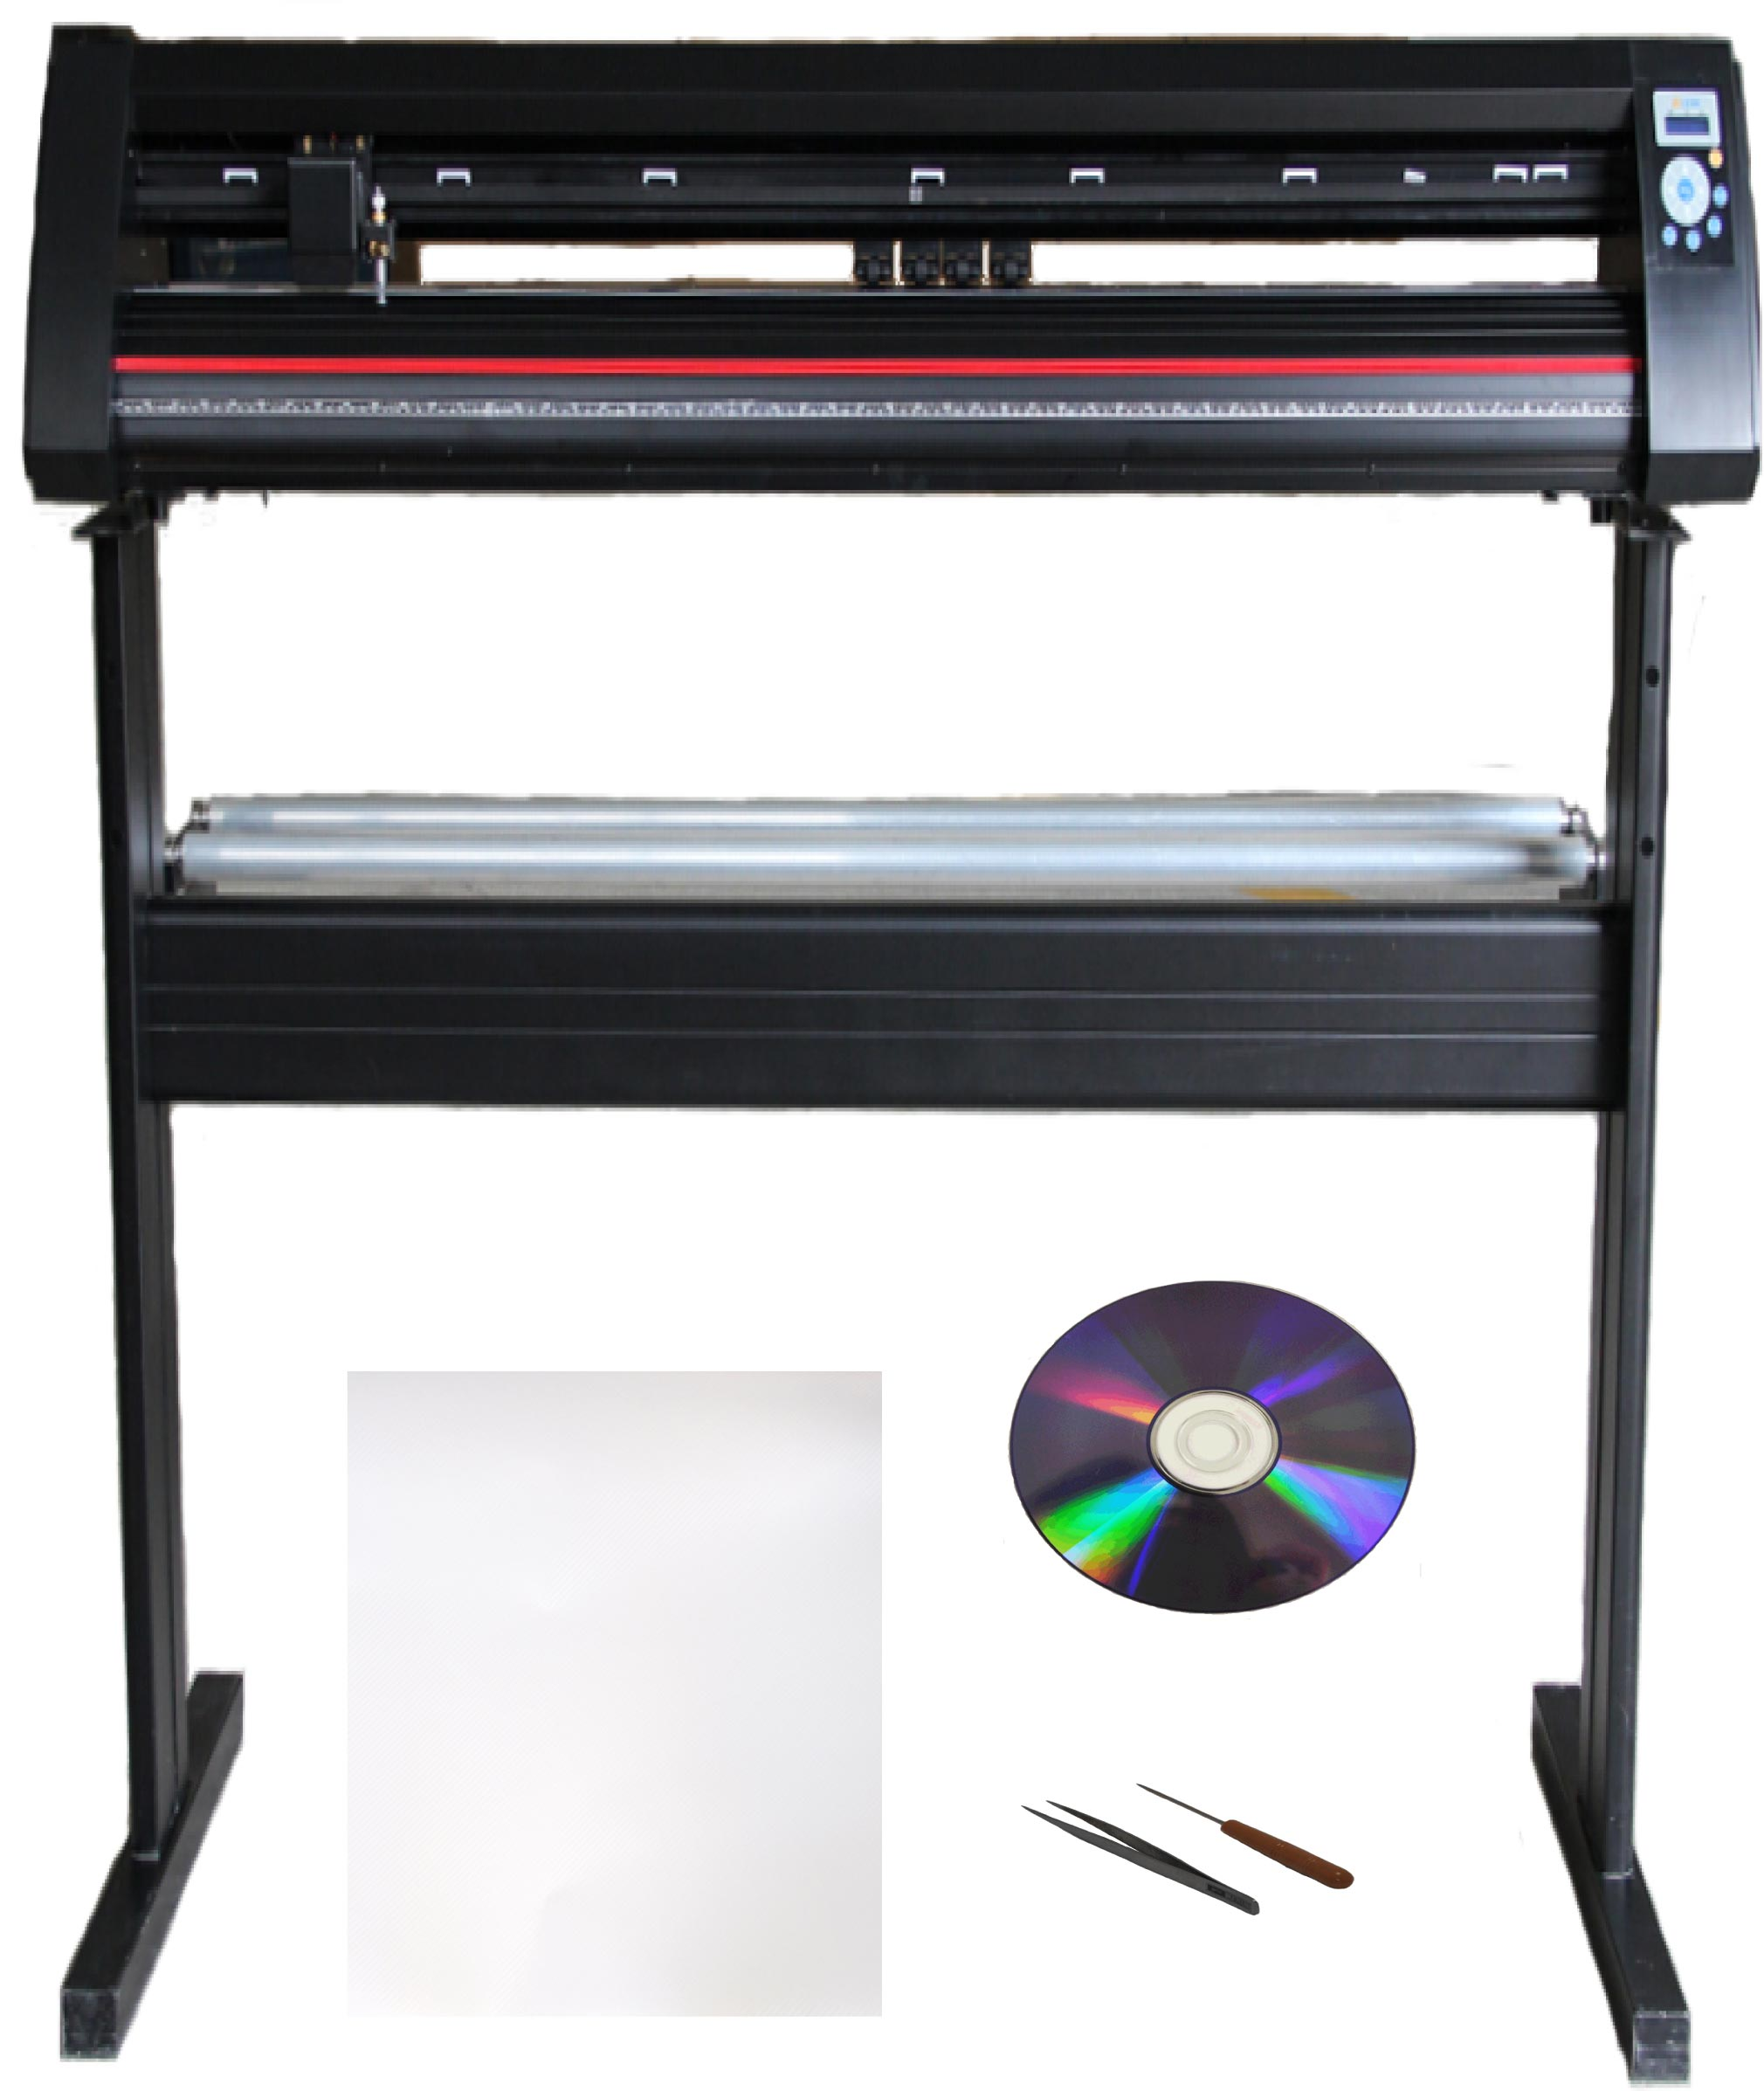 "28"" 500g Force Metal Auto Contour Vinyl Cutter Plotter Bundle"